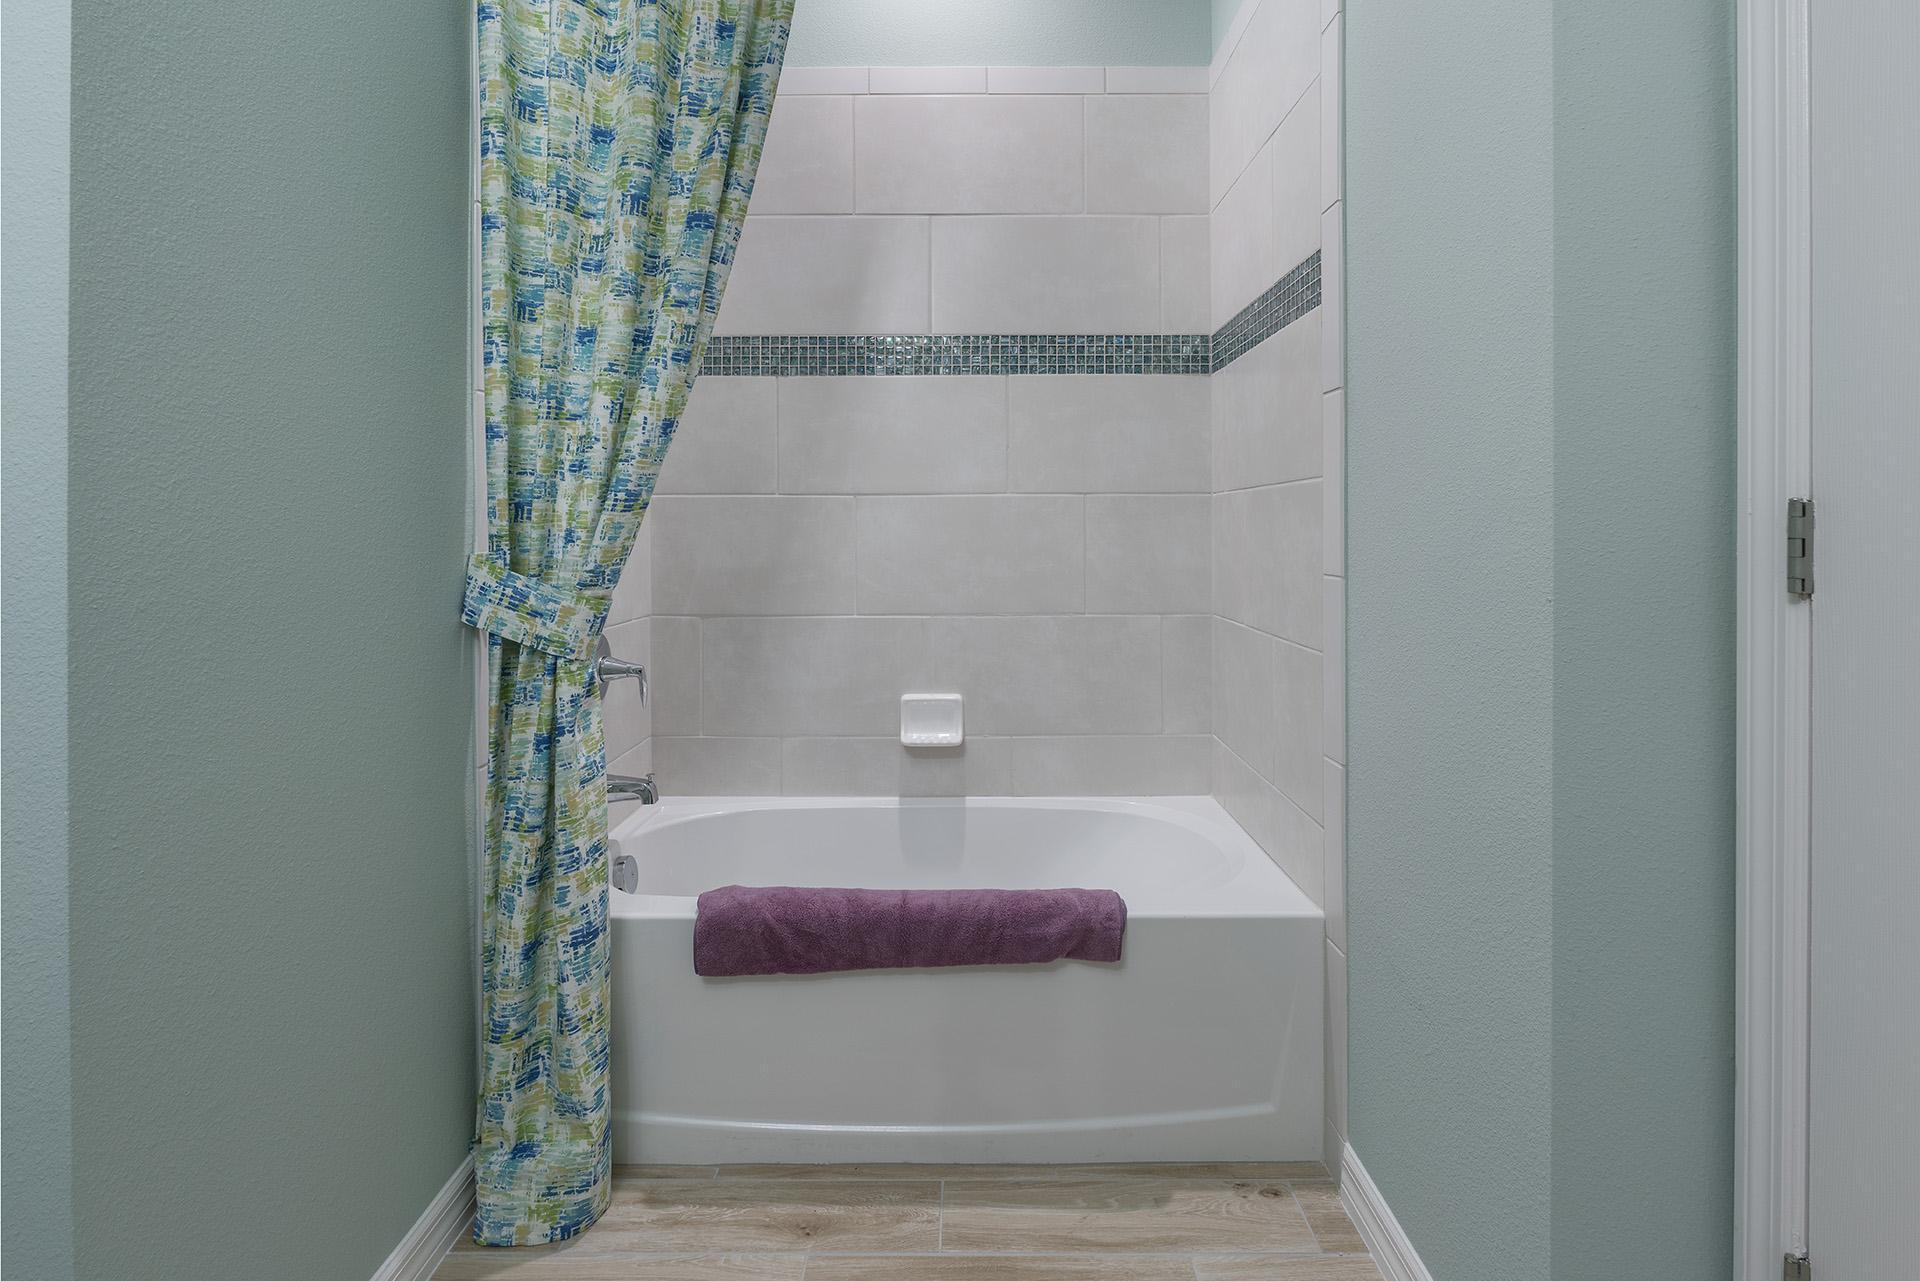 Bathroom featured in the Berkshire By Hanover Family Builders in Lakeland-Winter Haven, FL